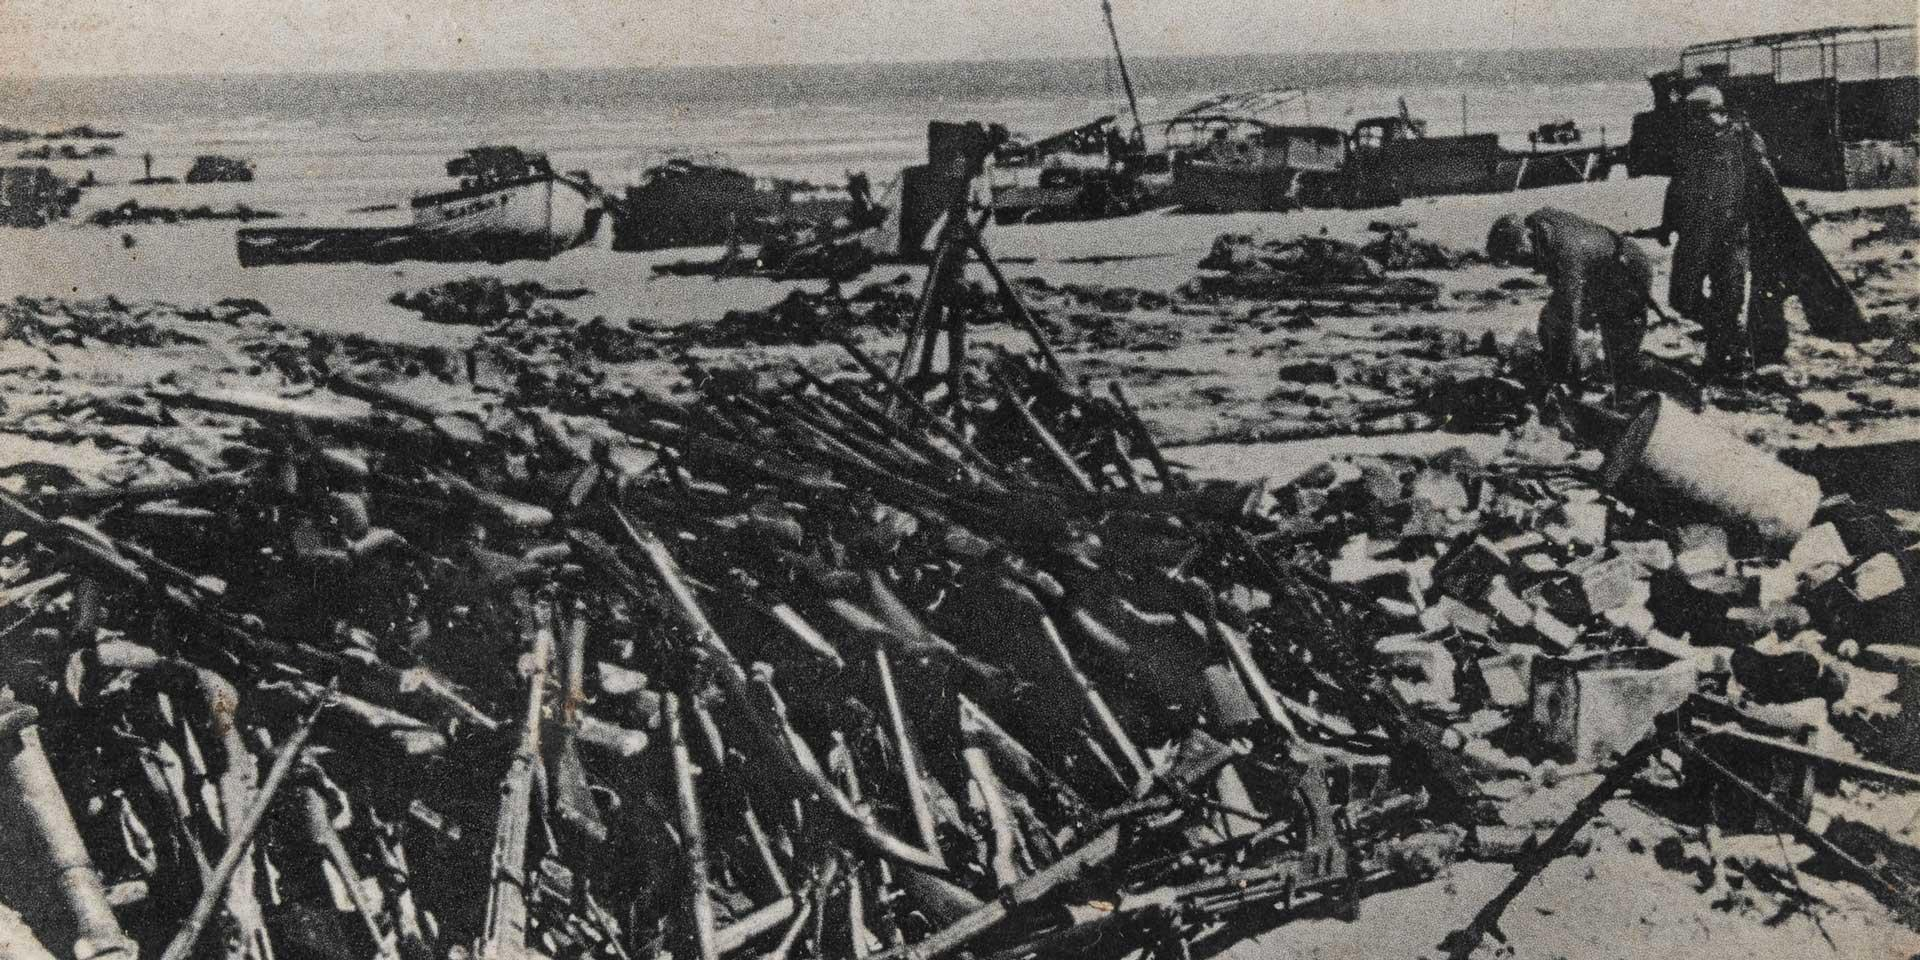 German soldiers collect Allied equipment at Dunkirk, 1940